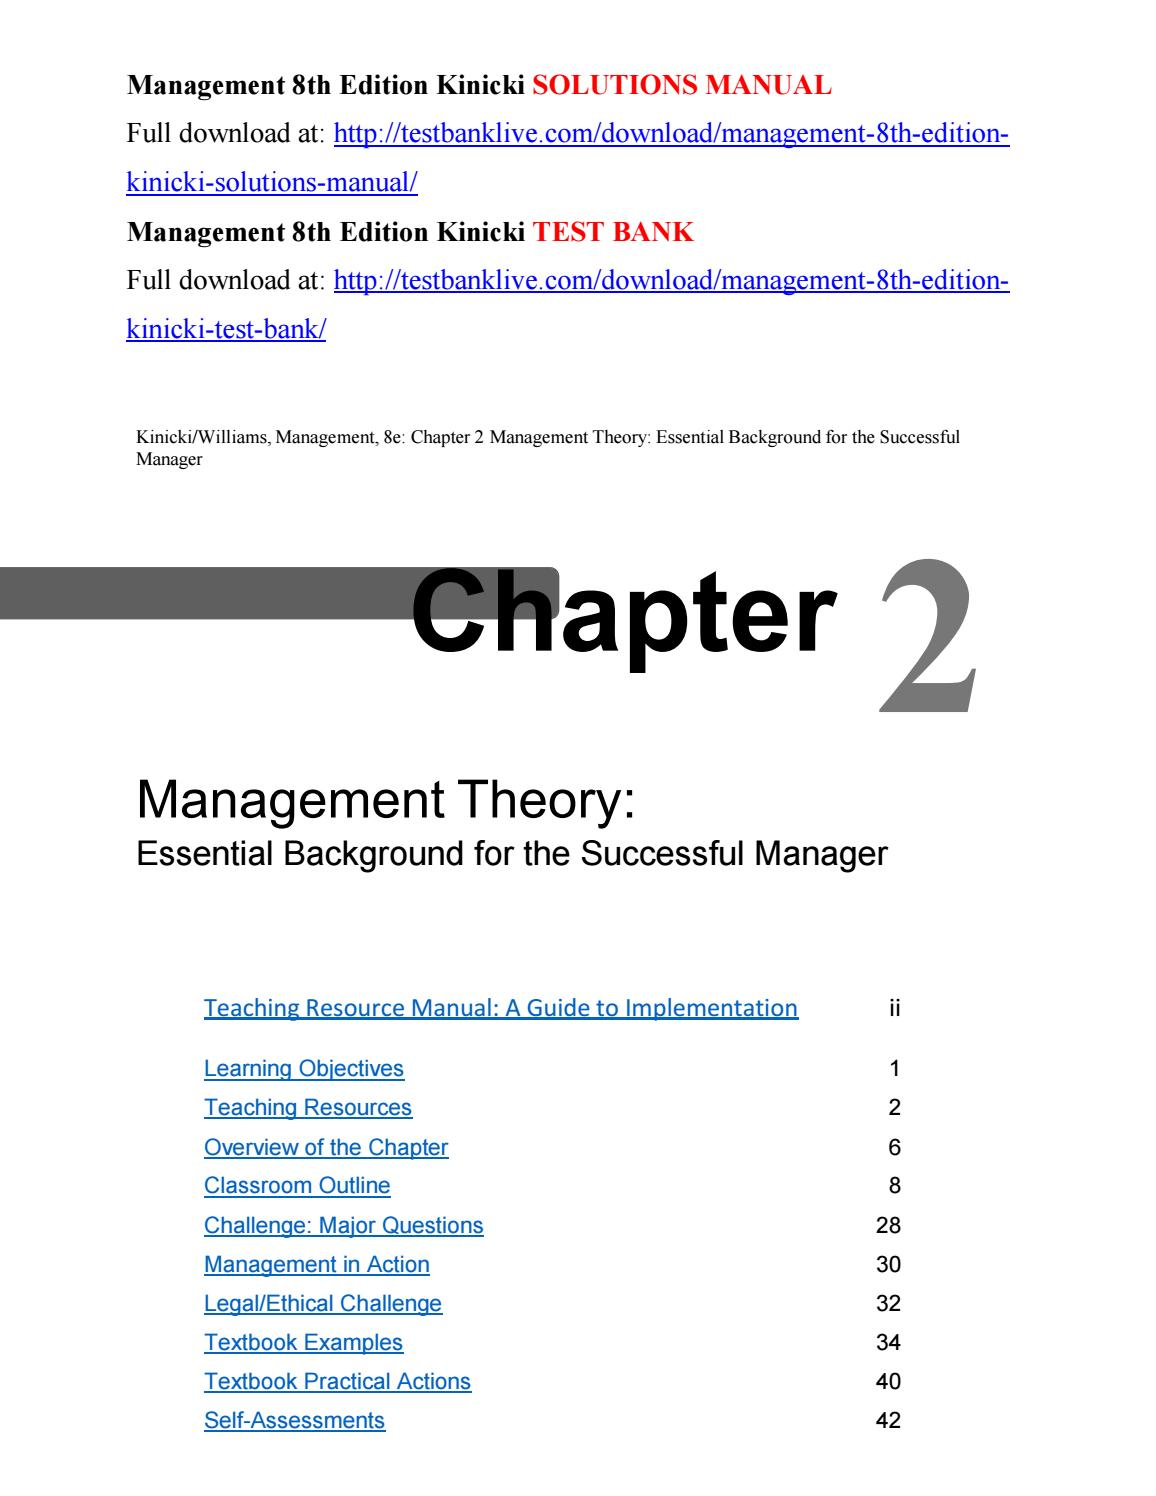 Management 8th Edition Kinicki Solutions Manual By Lothura Issuu